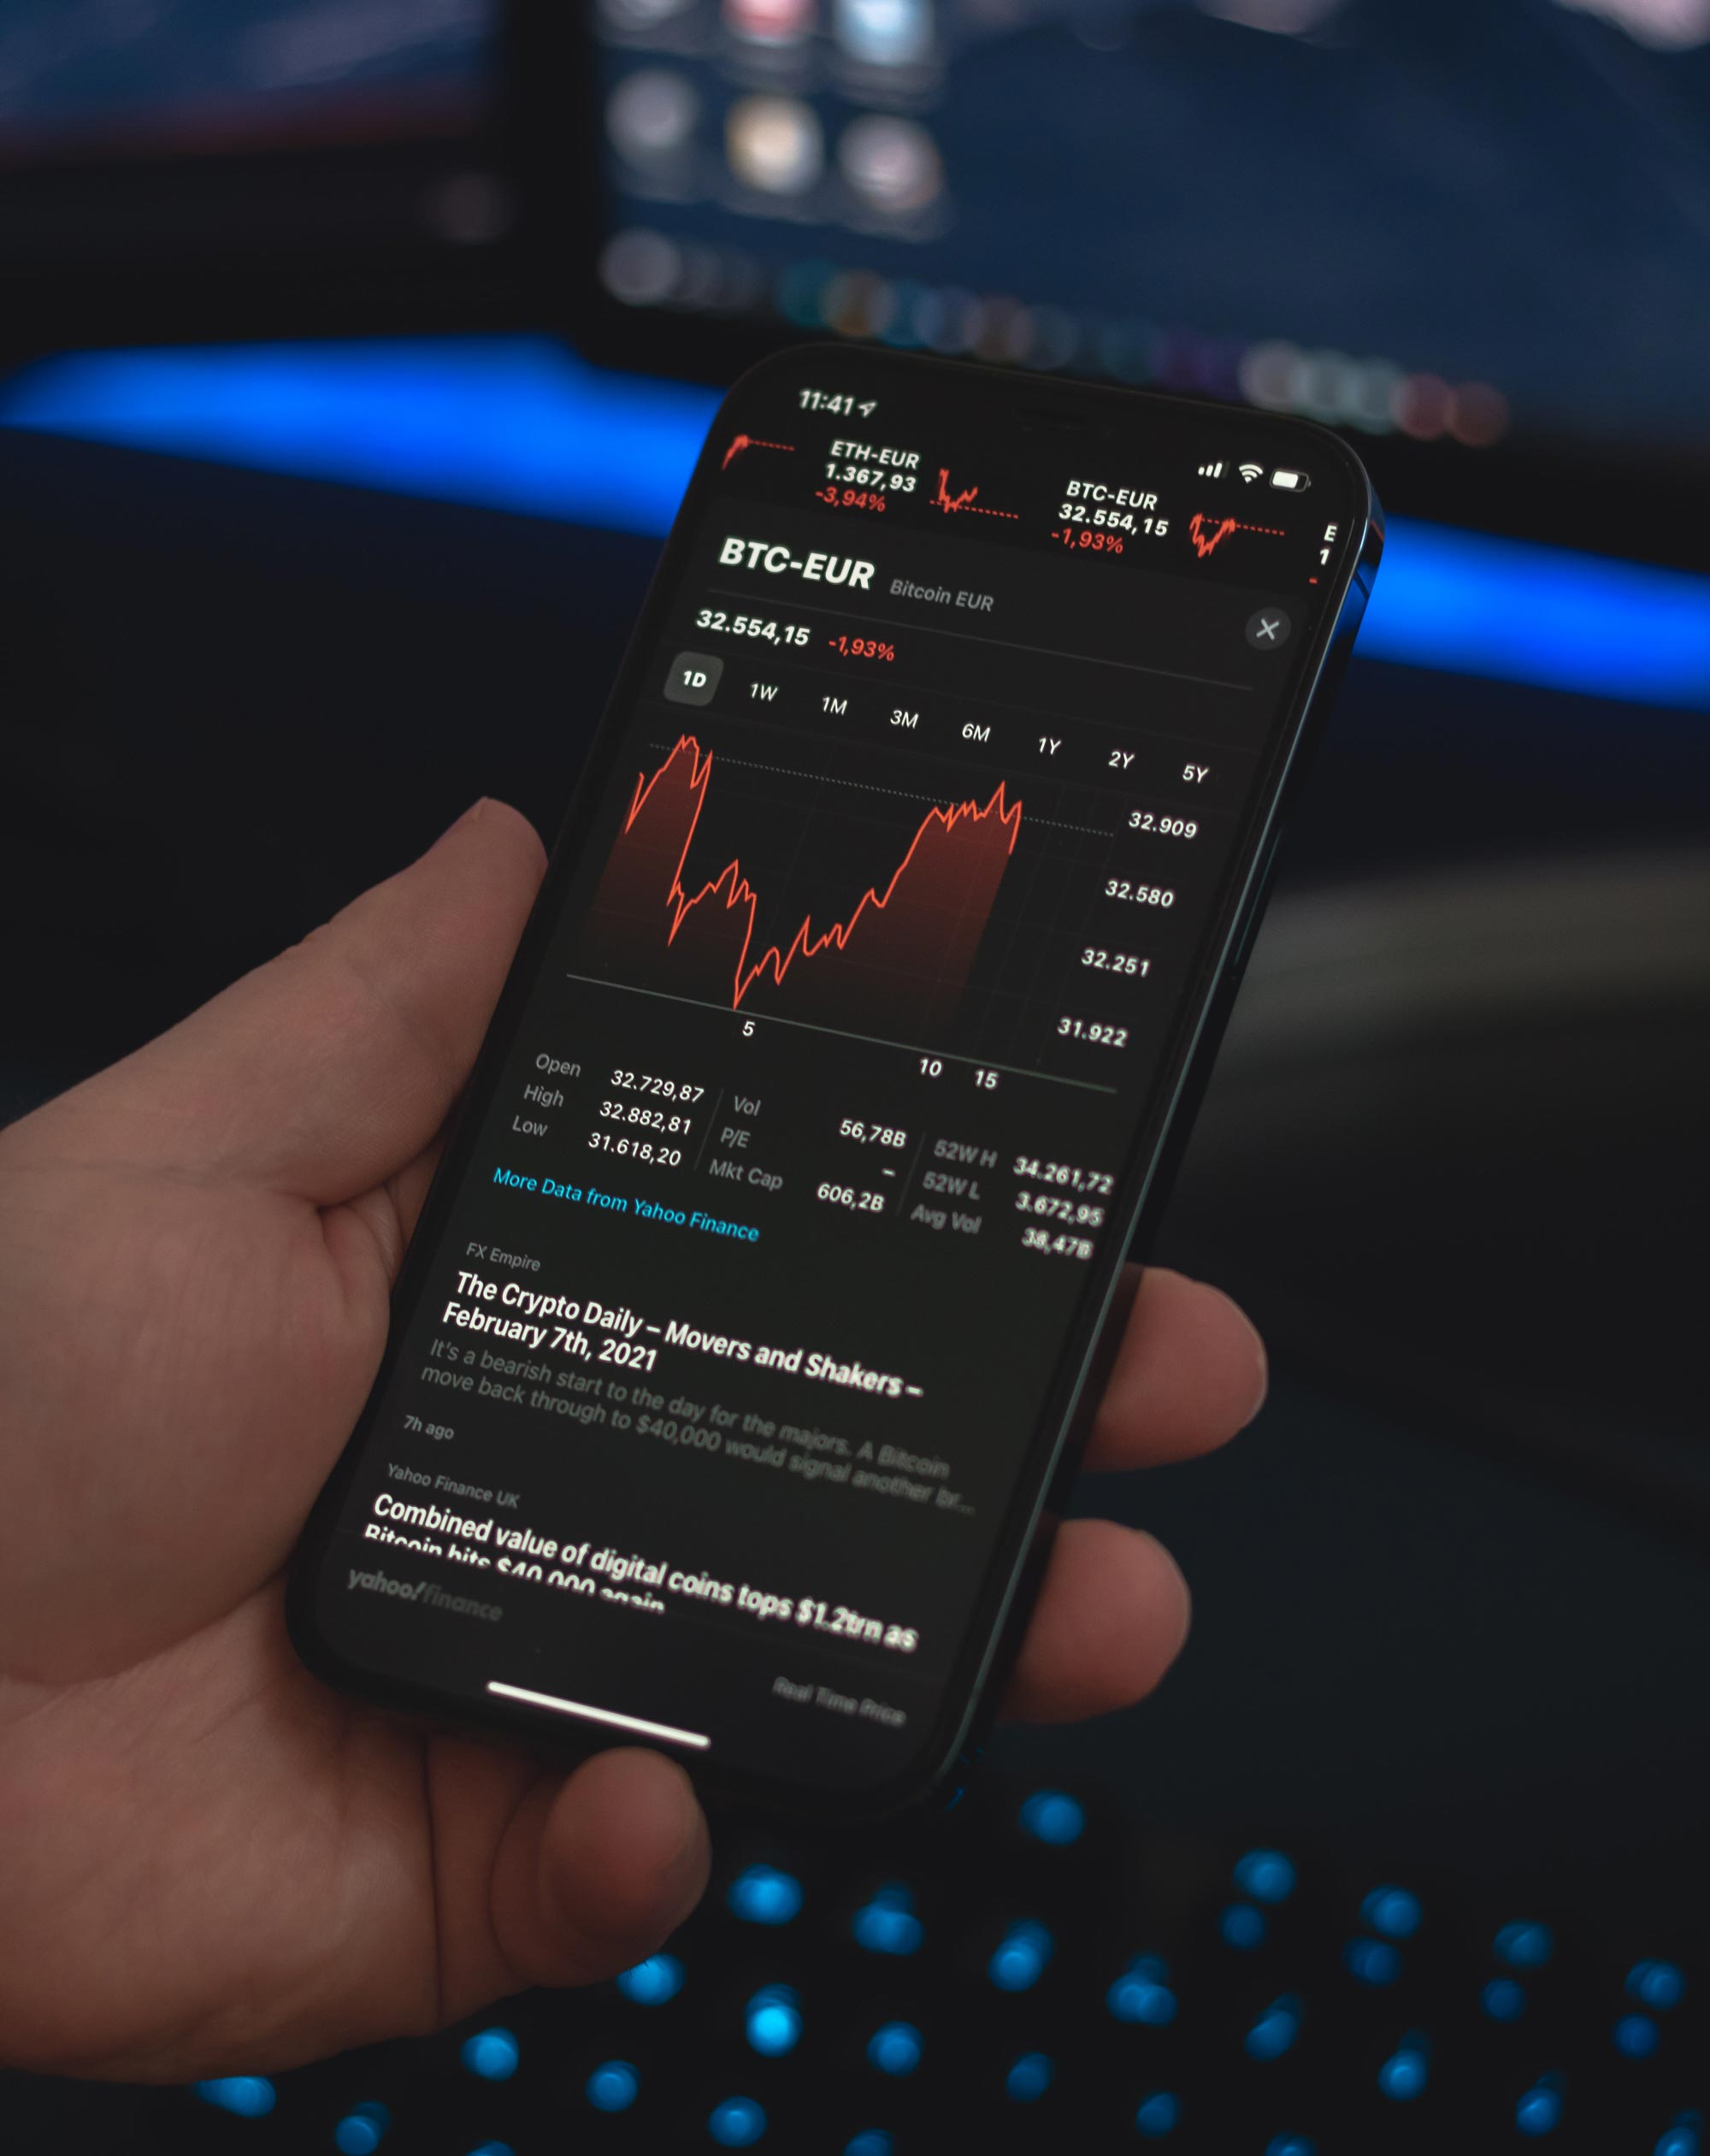 person holding an iPhone displaying a cryptocurrency app